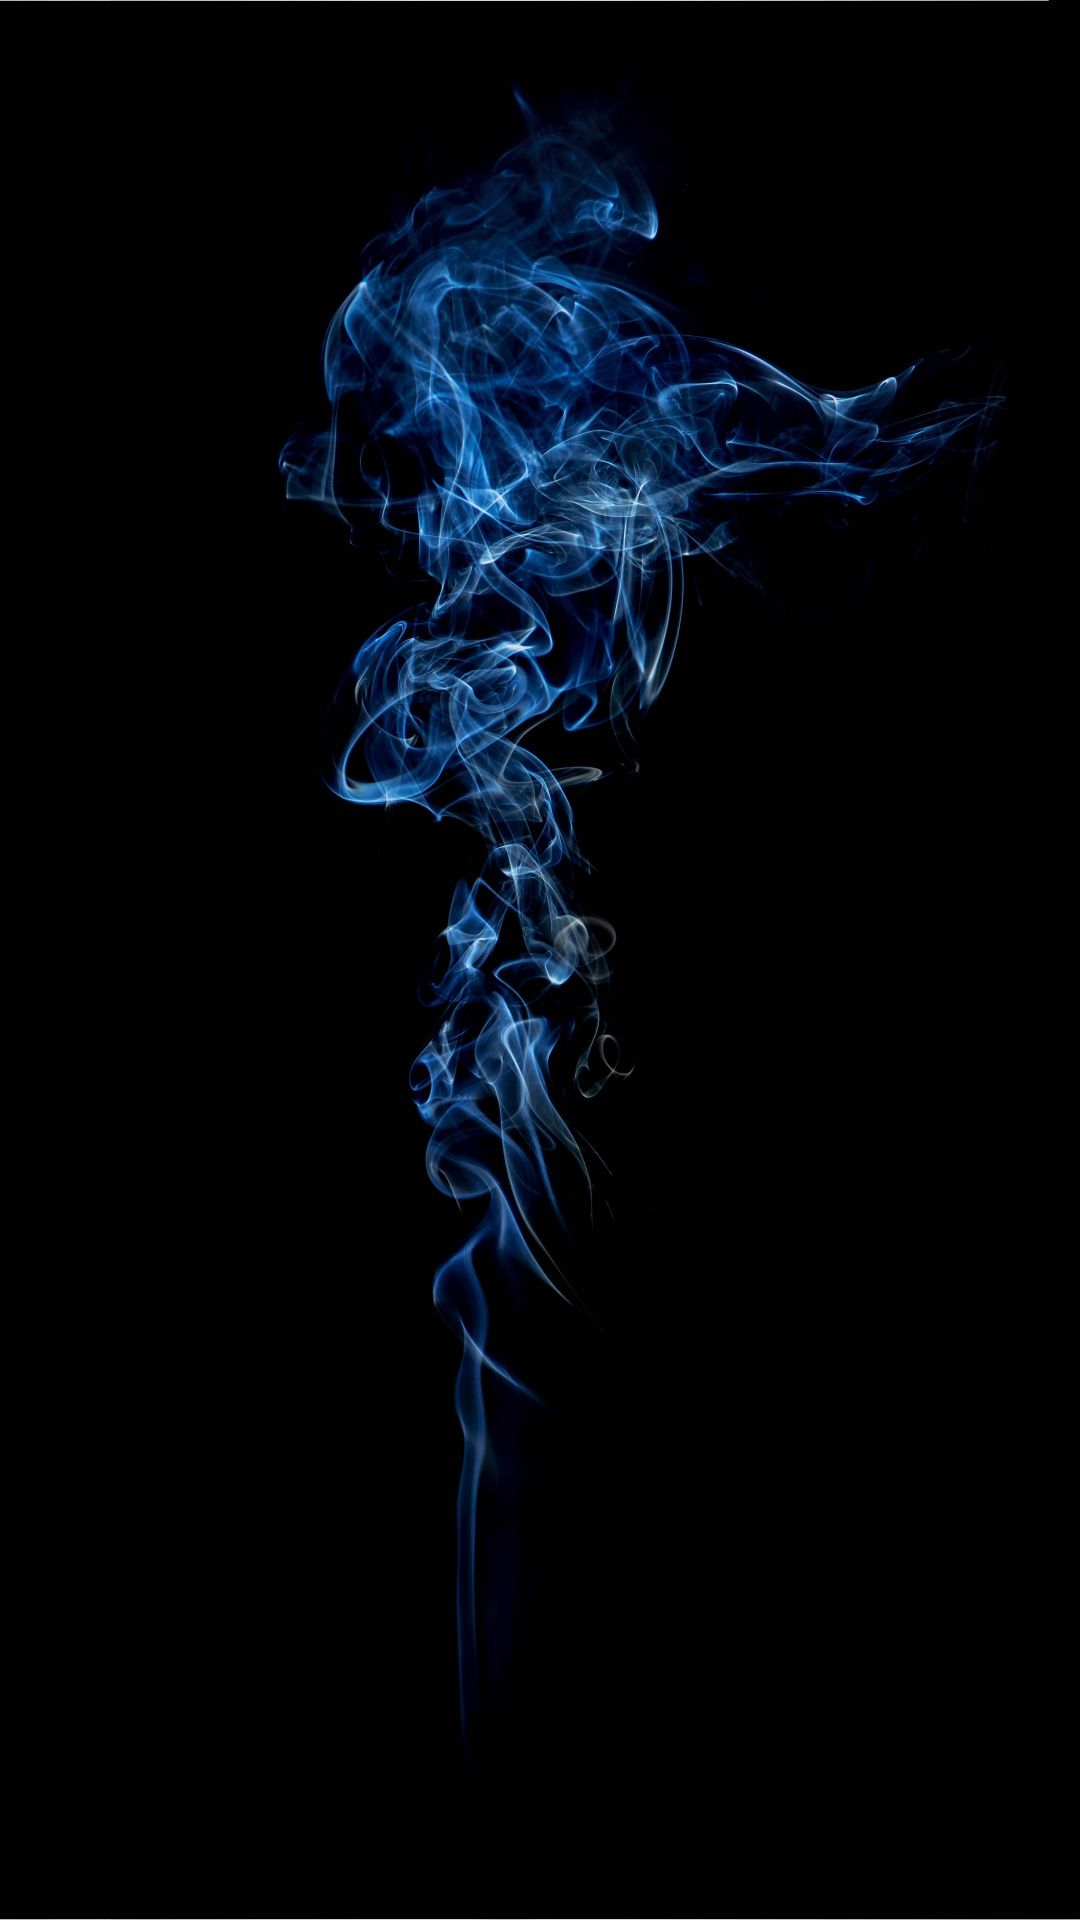 Minimal Blue Smoke Wallpaper Smoke Wallpaper Dark Blue Wallpaper Blue Background Wallpapers